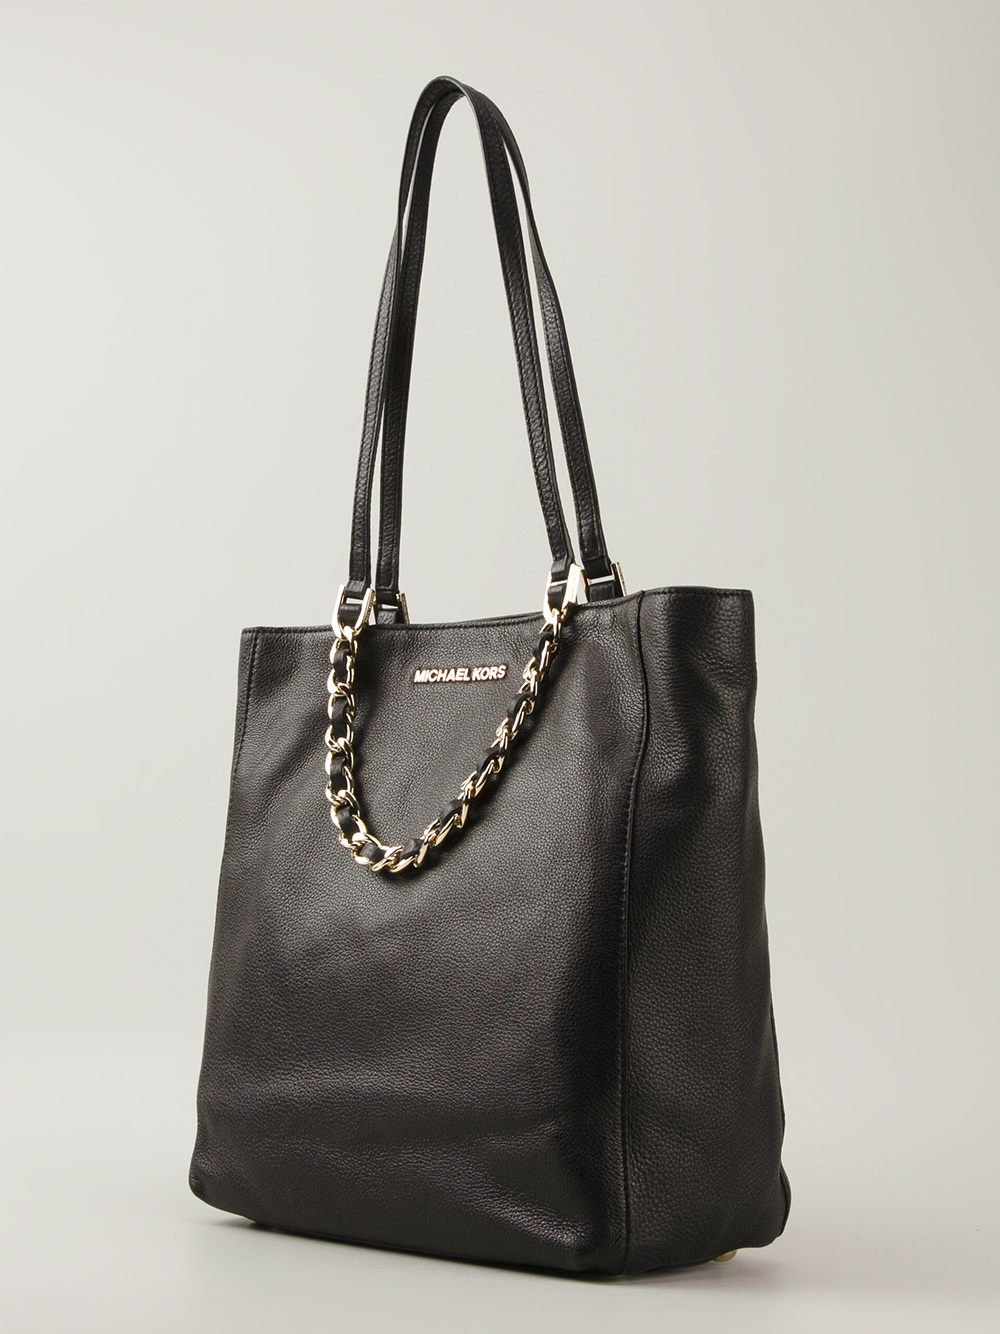 028497a8c5c0 Lyst - Michael Michael Kors Chain Strap Tote in Black ...